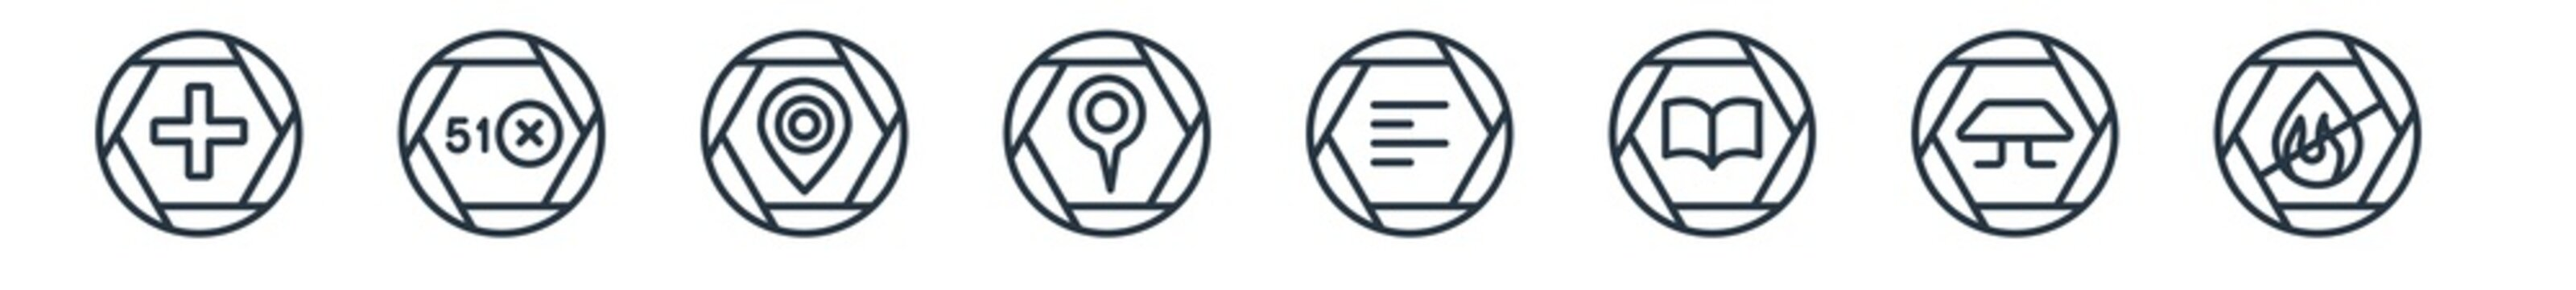 linear set of signs outline icons. line vector icons such as add, area 51, restaurant, map and map pointer, align left, no fire allowed vector illustration.